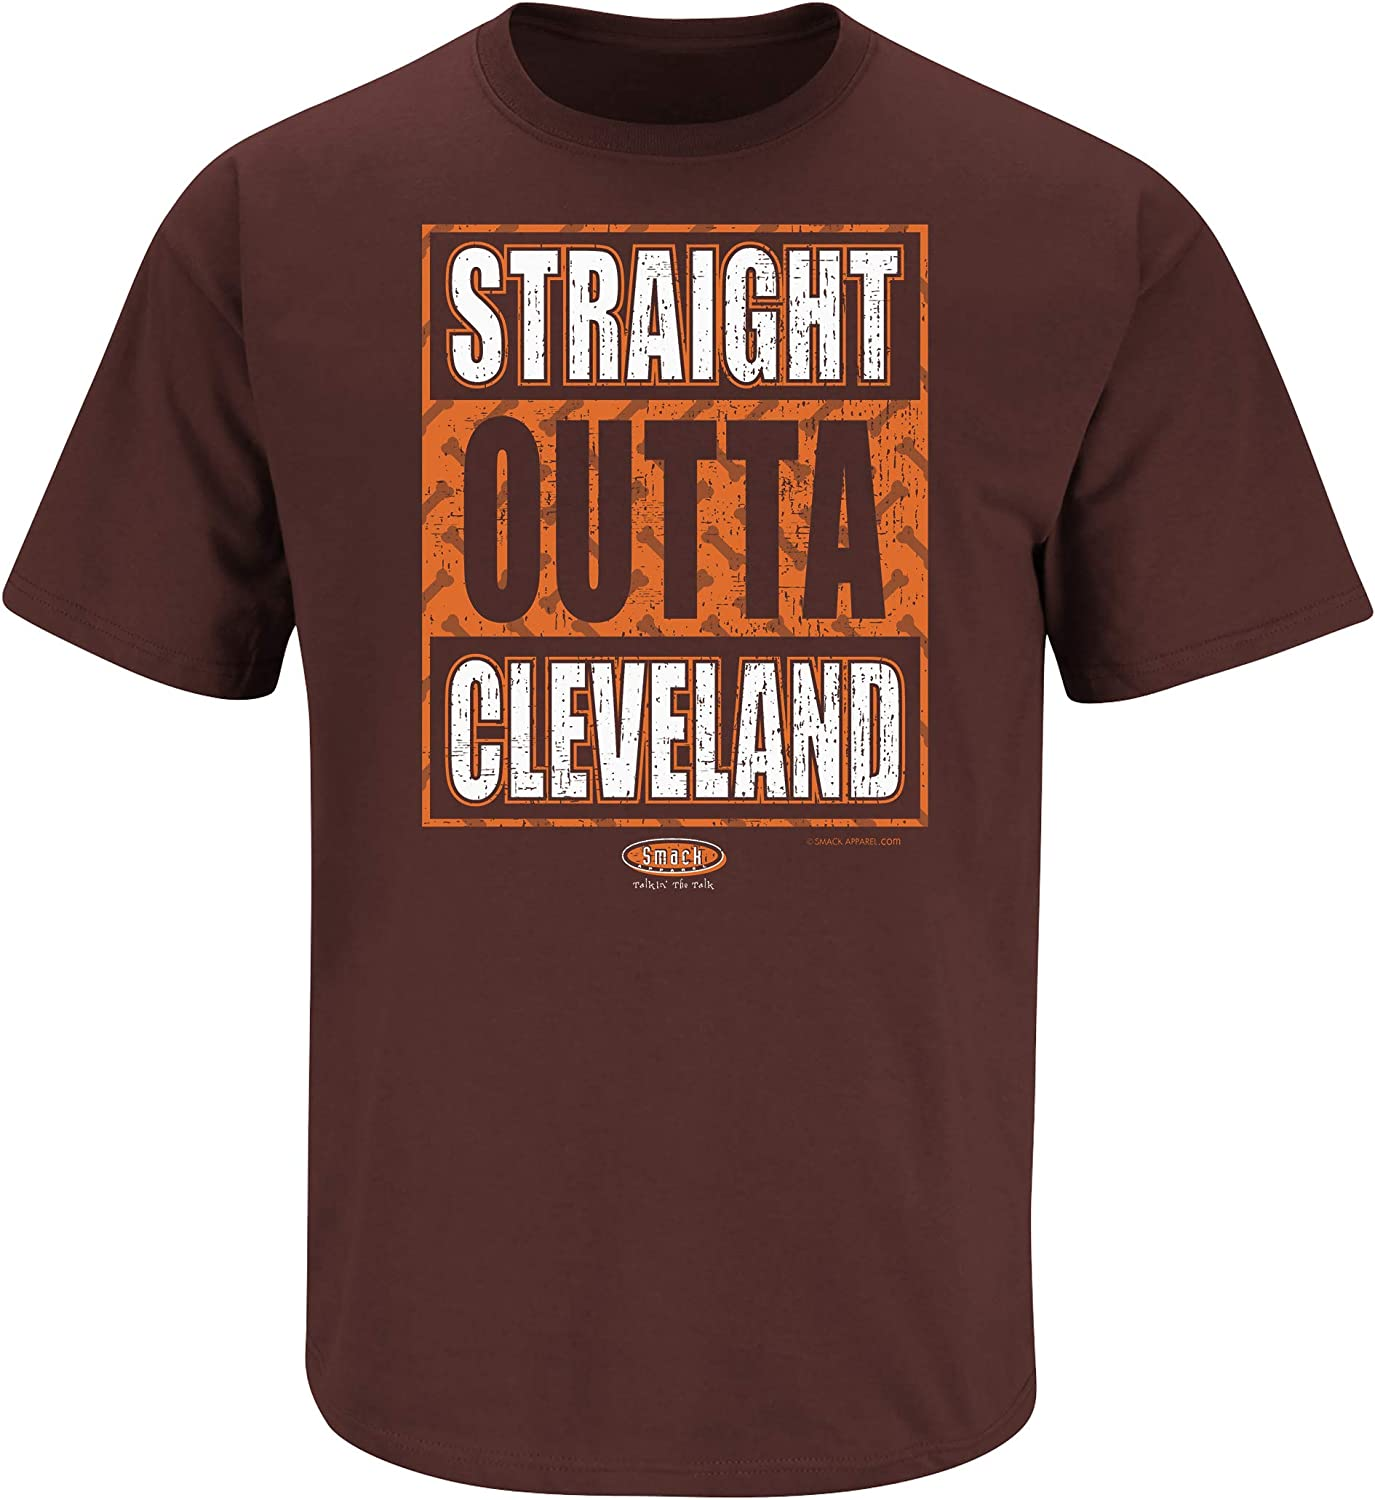 Straight Outta Cleveland Brown T Shirt Sm-5X Smack Apparel Cleveland Football Fans